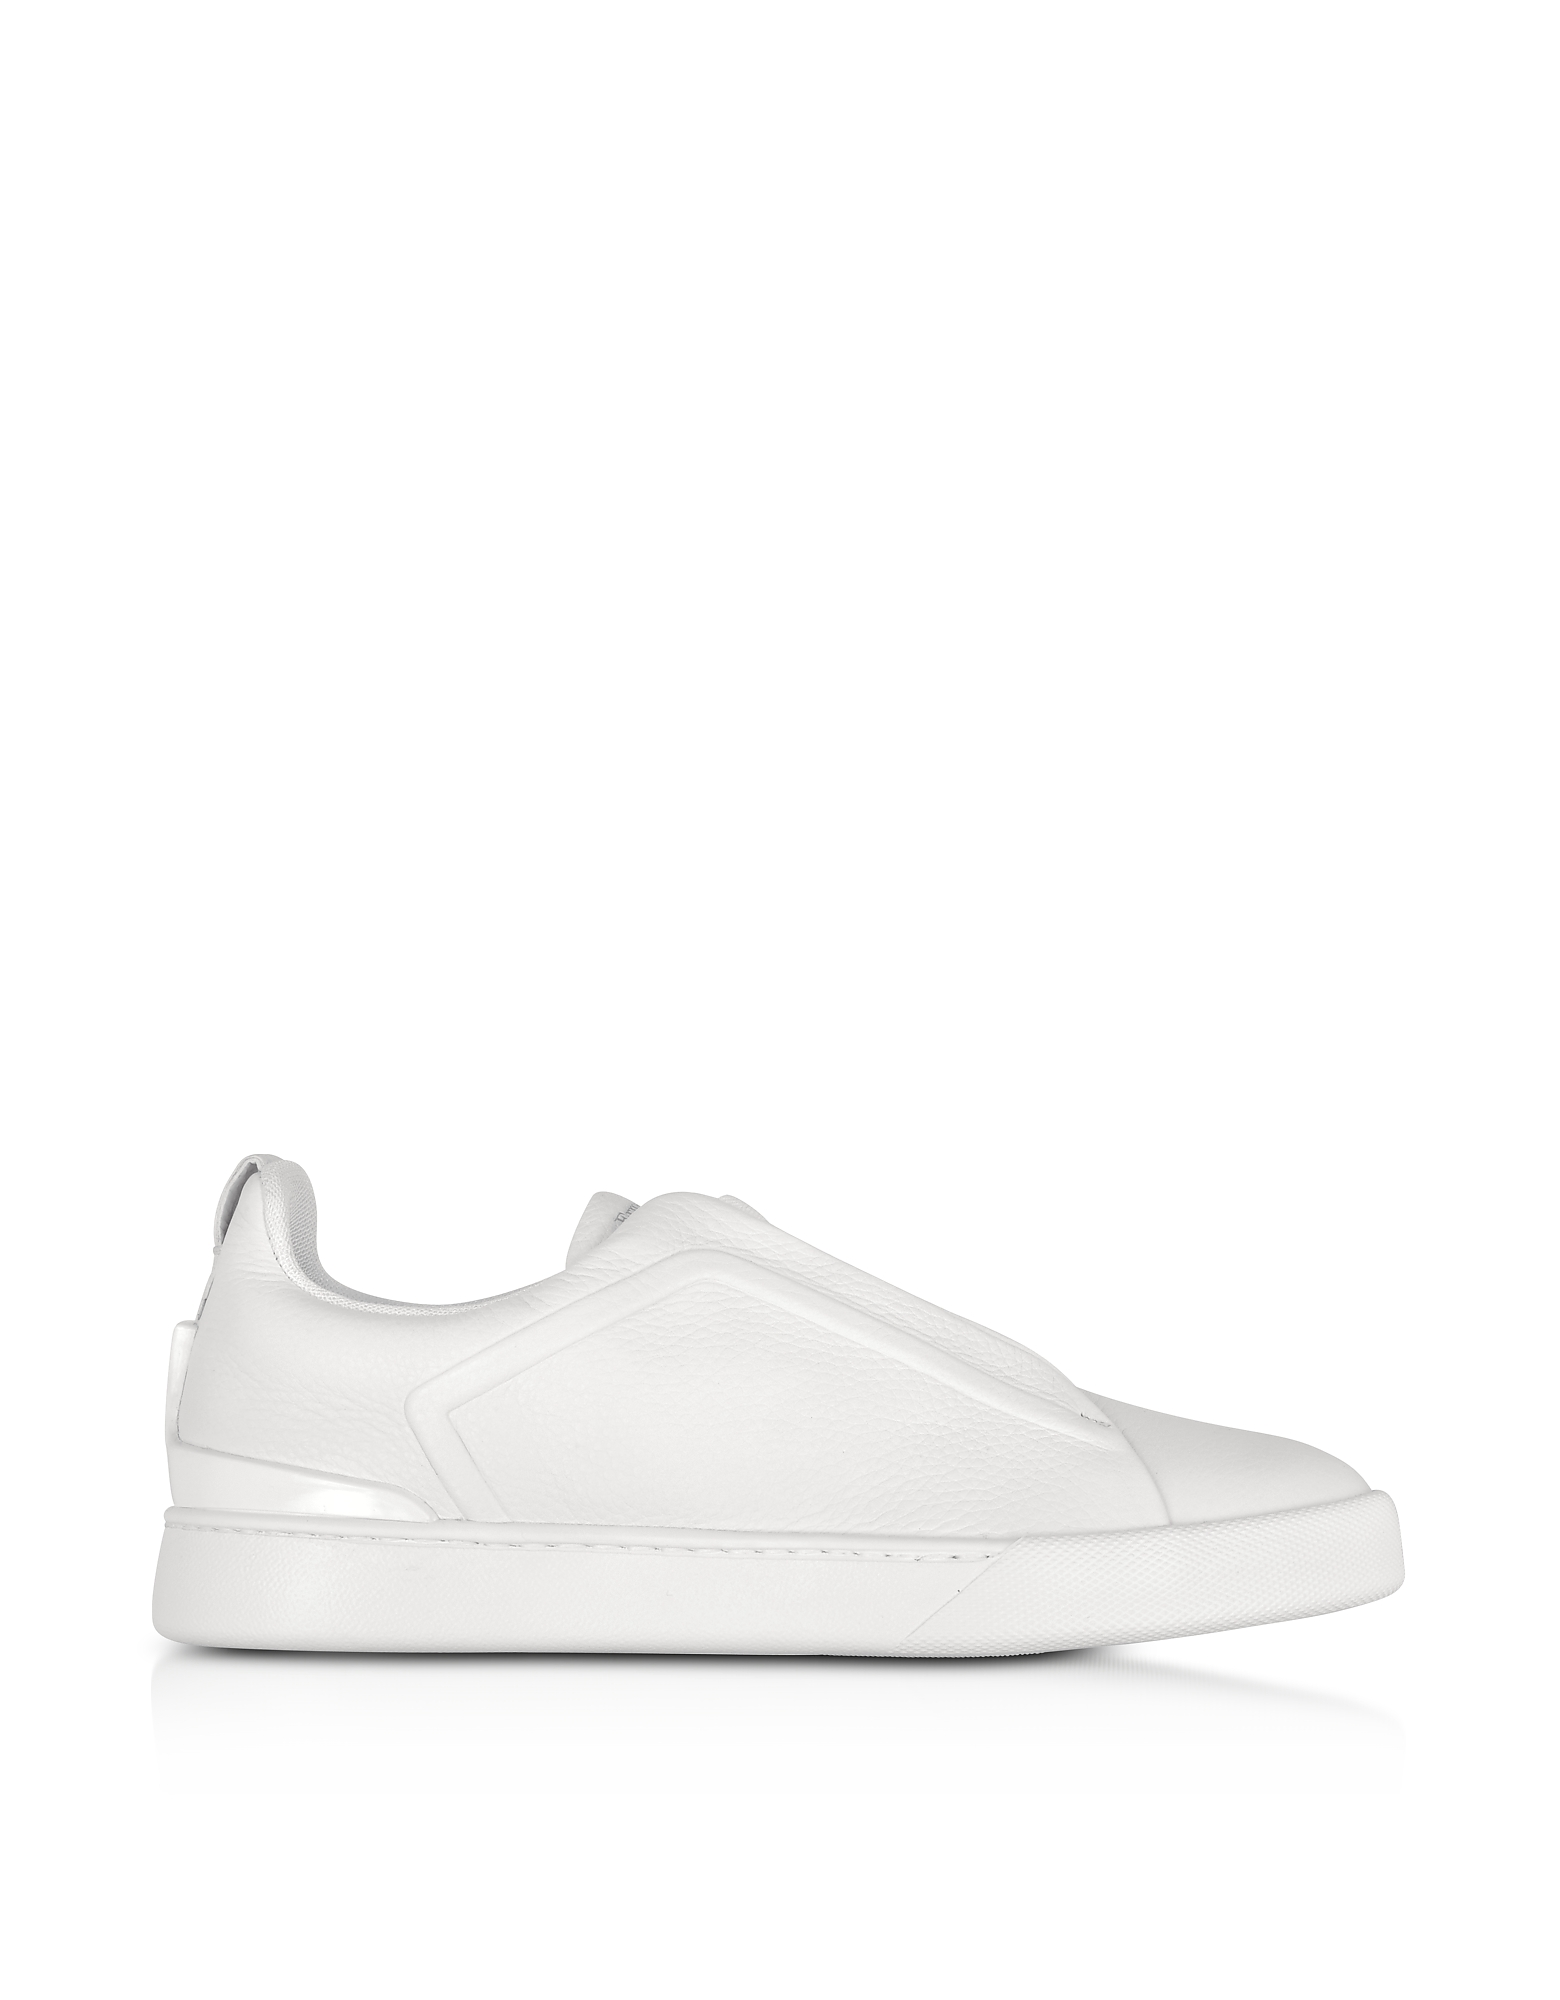 Ermenegildo Zegna Shoes, Triple Stitch Optic White Leather Low Top Sneakers